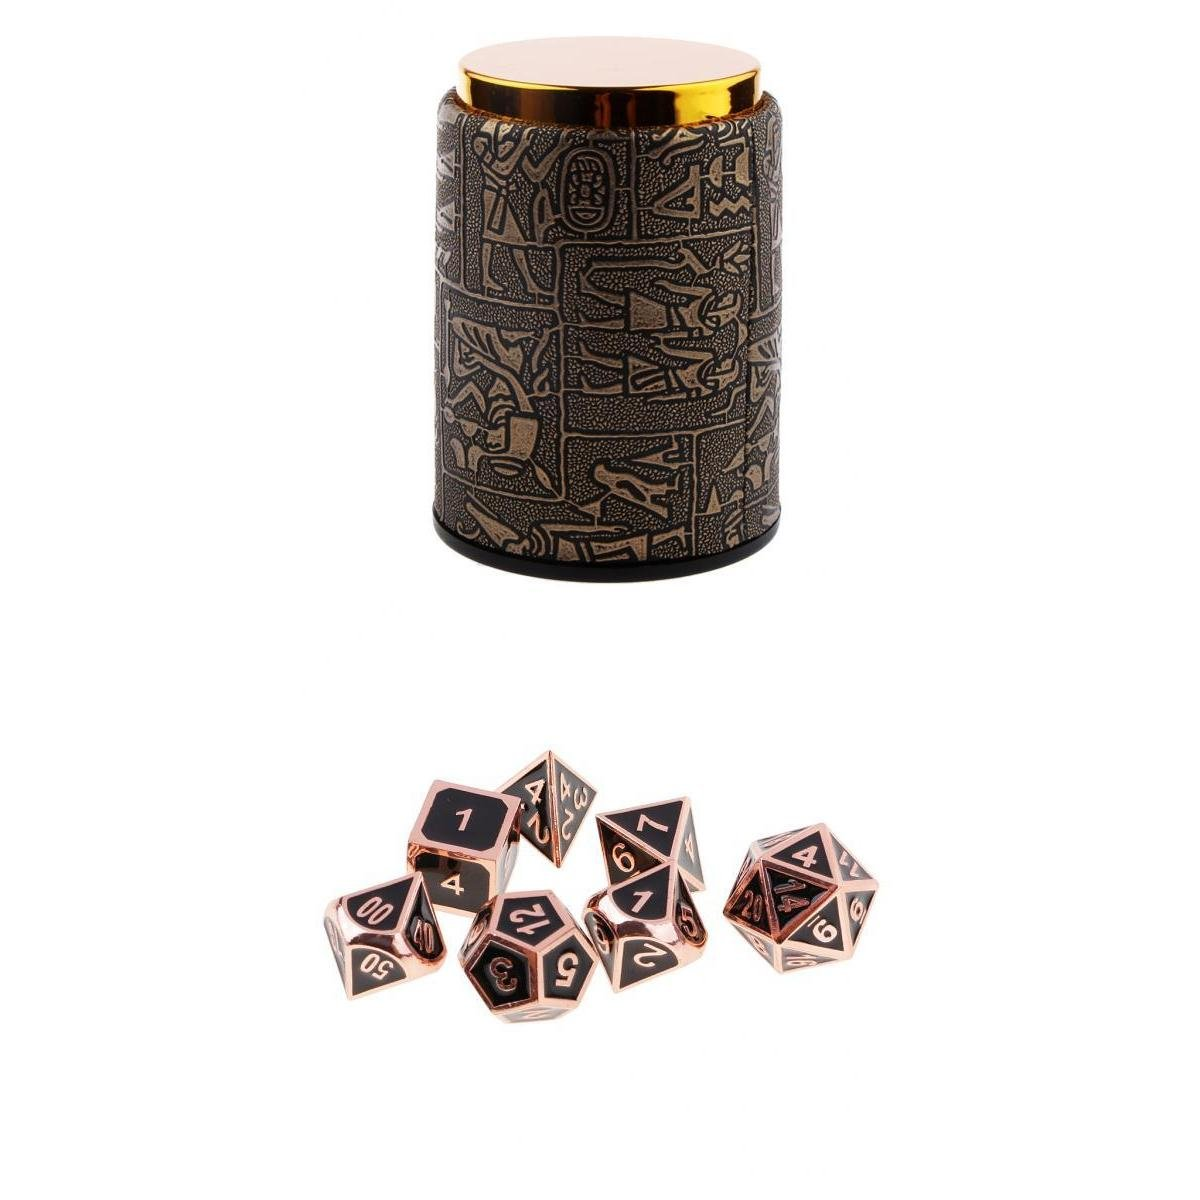 MagiDeal 7 Set Metal Polyhedral Dice for Dungeons and Dragons DND MTG +Dice Cup #2 non-brand